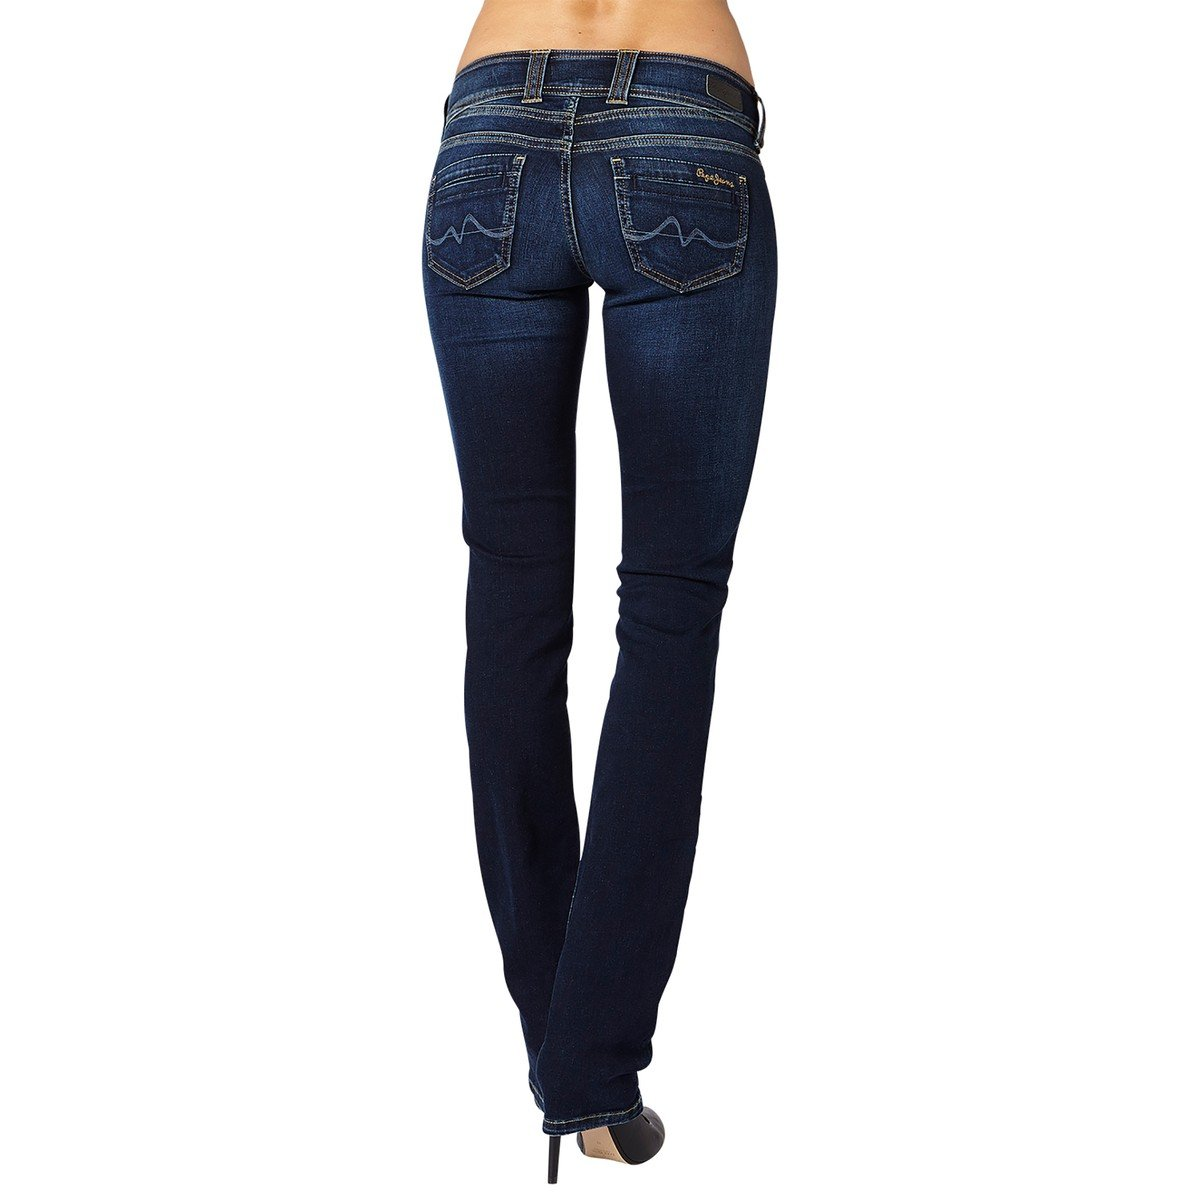 Pepe Jeans Womens Gen Straight Jeans Blue Size 31 Length 32 by Pepe Jeans (Image #2)